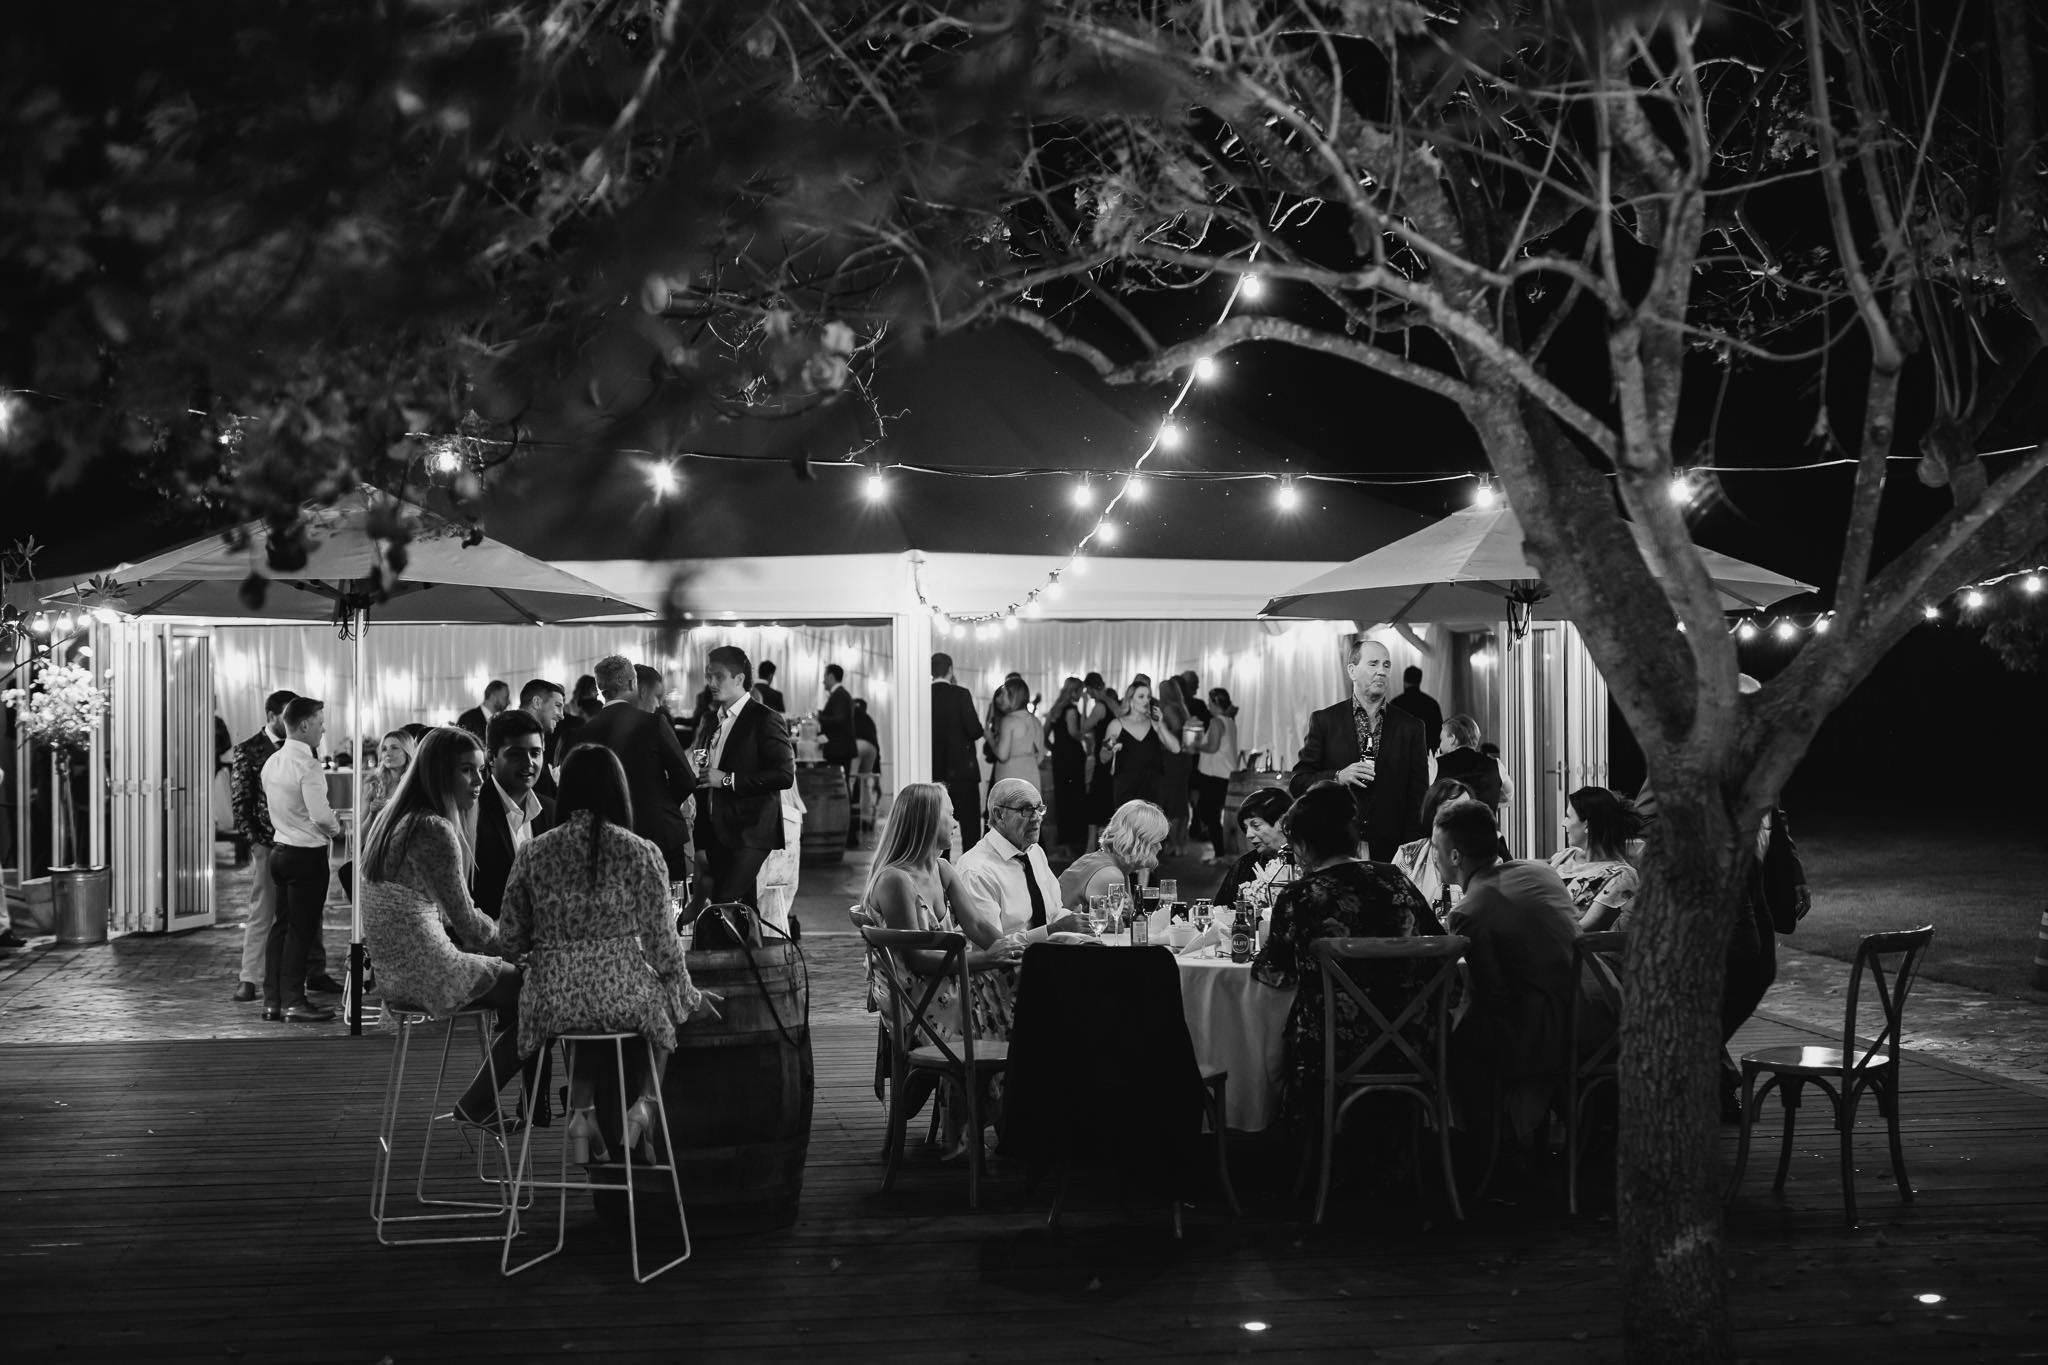 outdoor cocktail reception at night with bar stools and festoon lights under jacaranda trees at Old Broadwater Farm